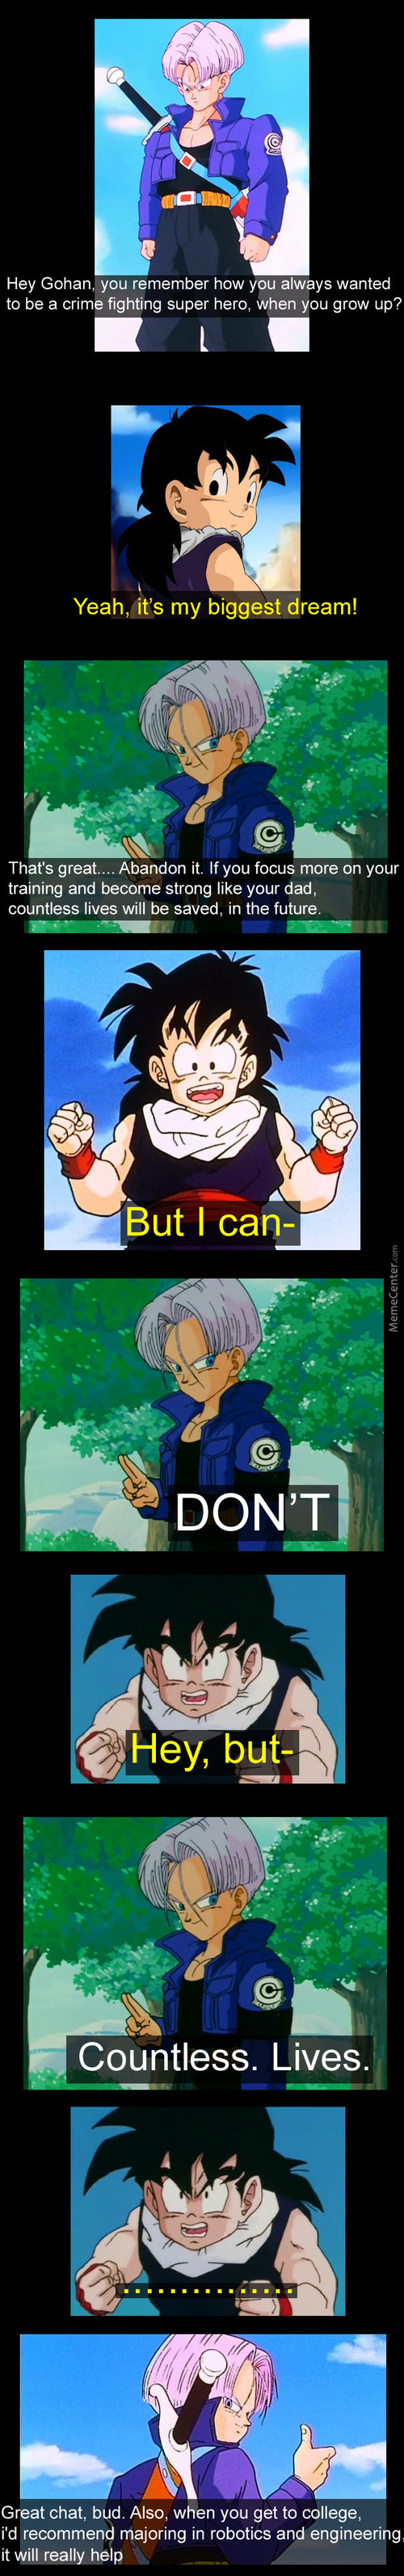 Trunks Is Right